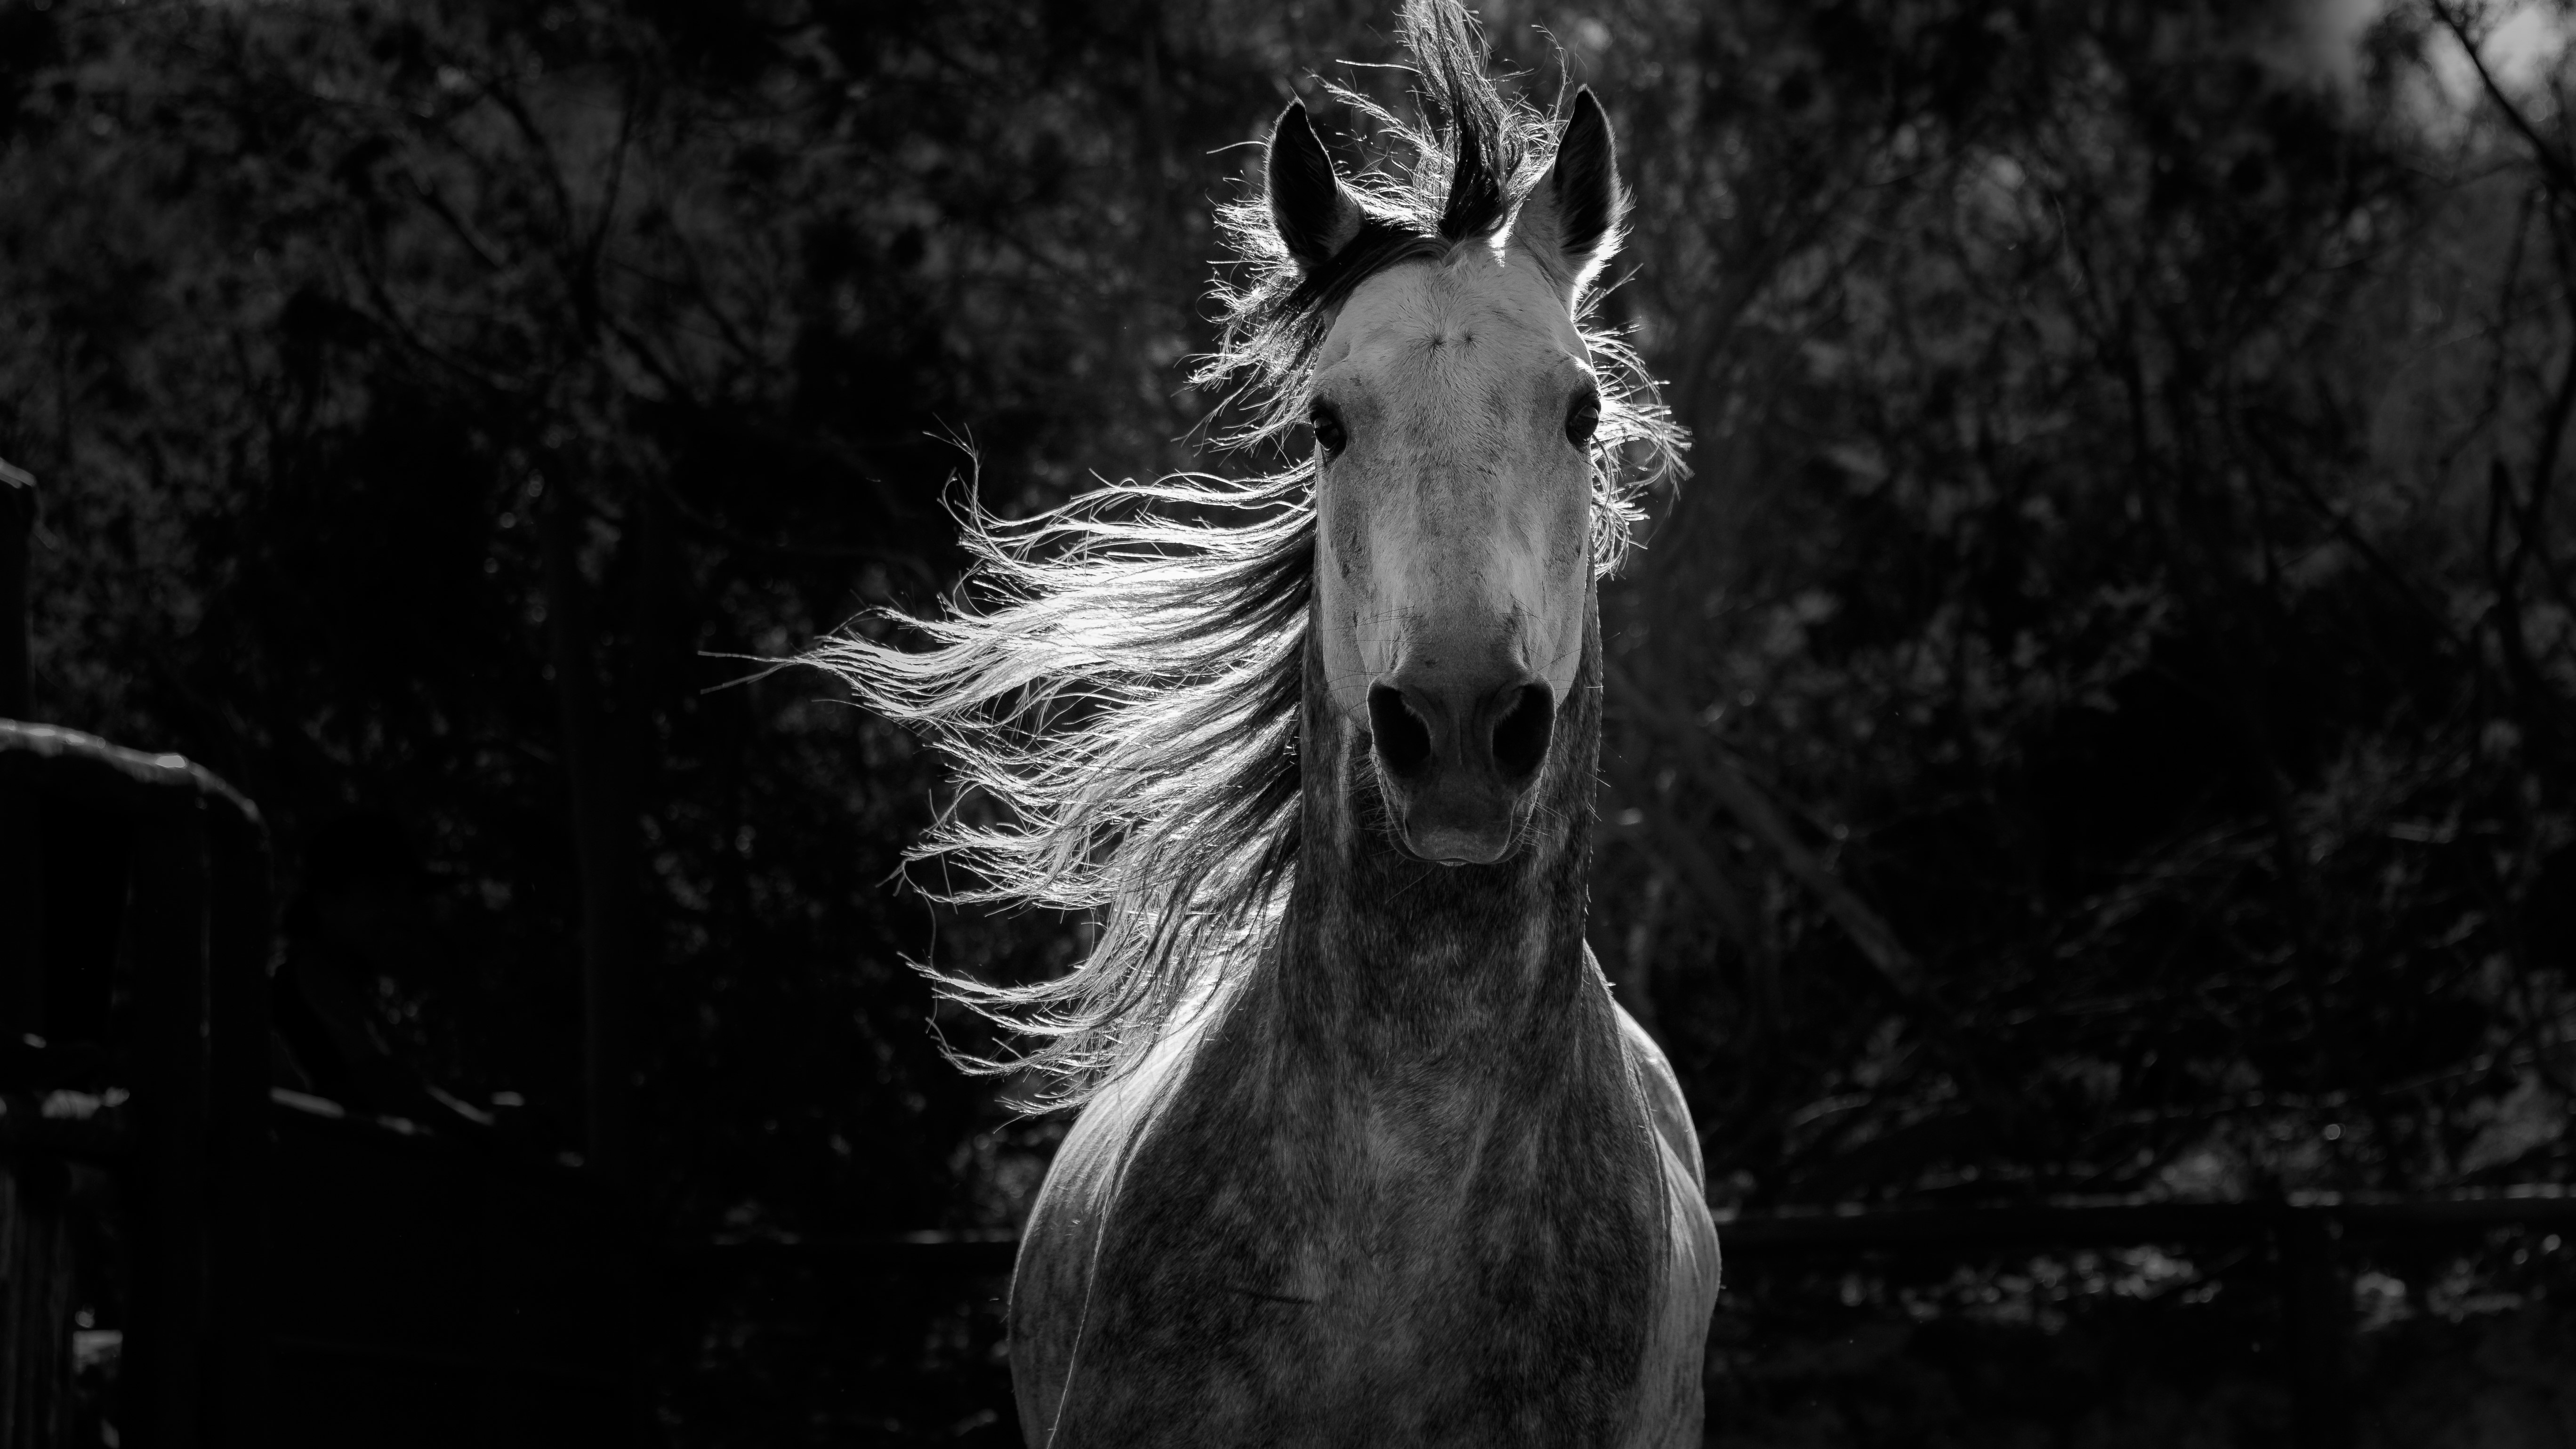 NATURE Equus: The Story of the Horse